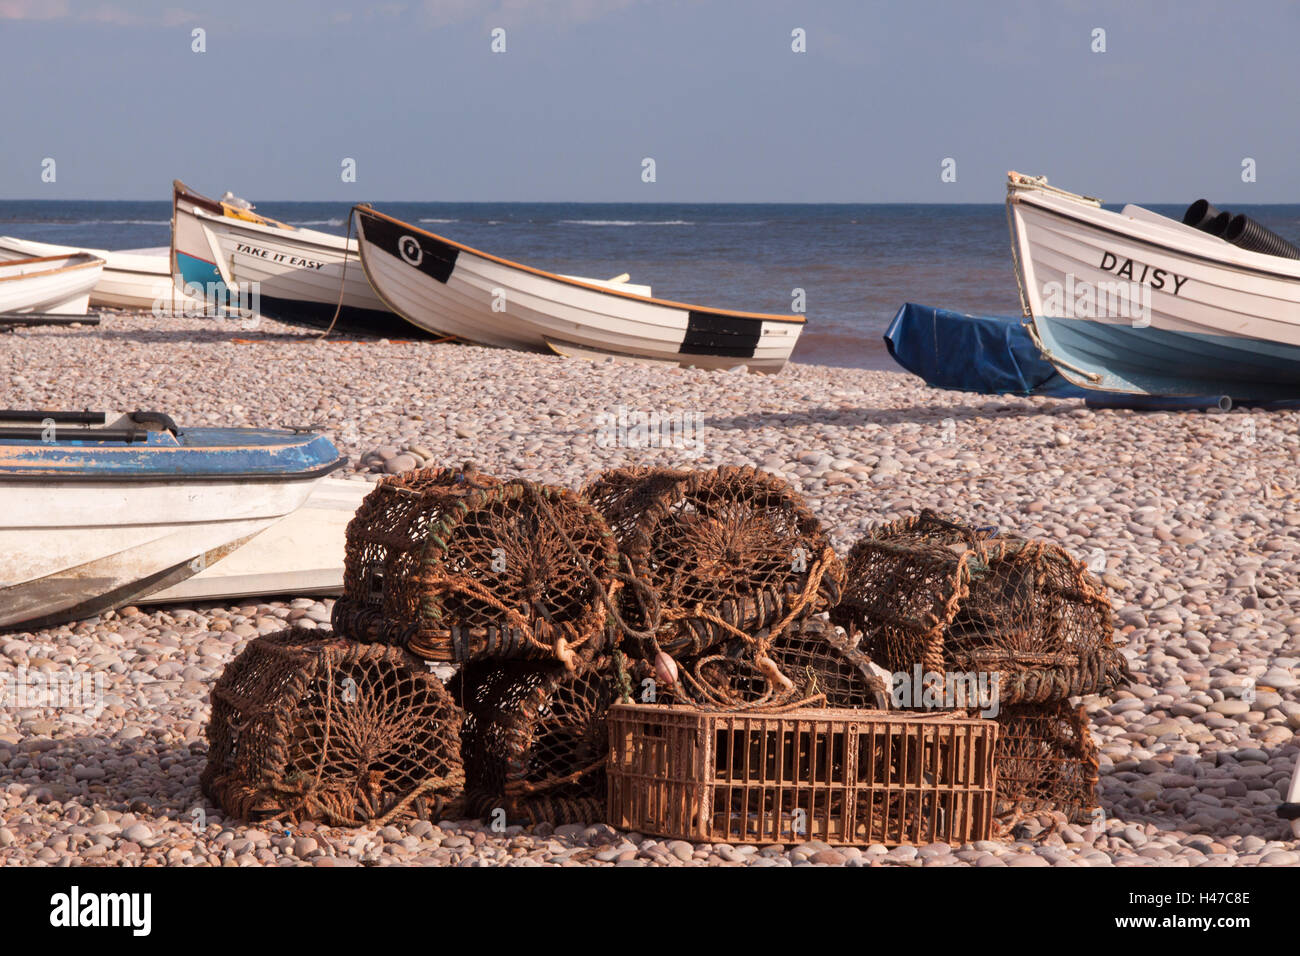 Lobster pots and crab creels on the pebble beach at Budleigh Salterton, Devon - Stock Image